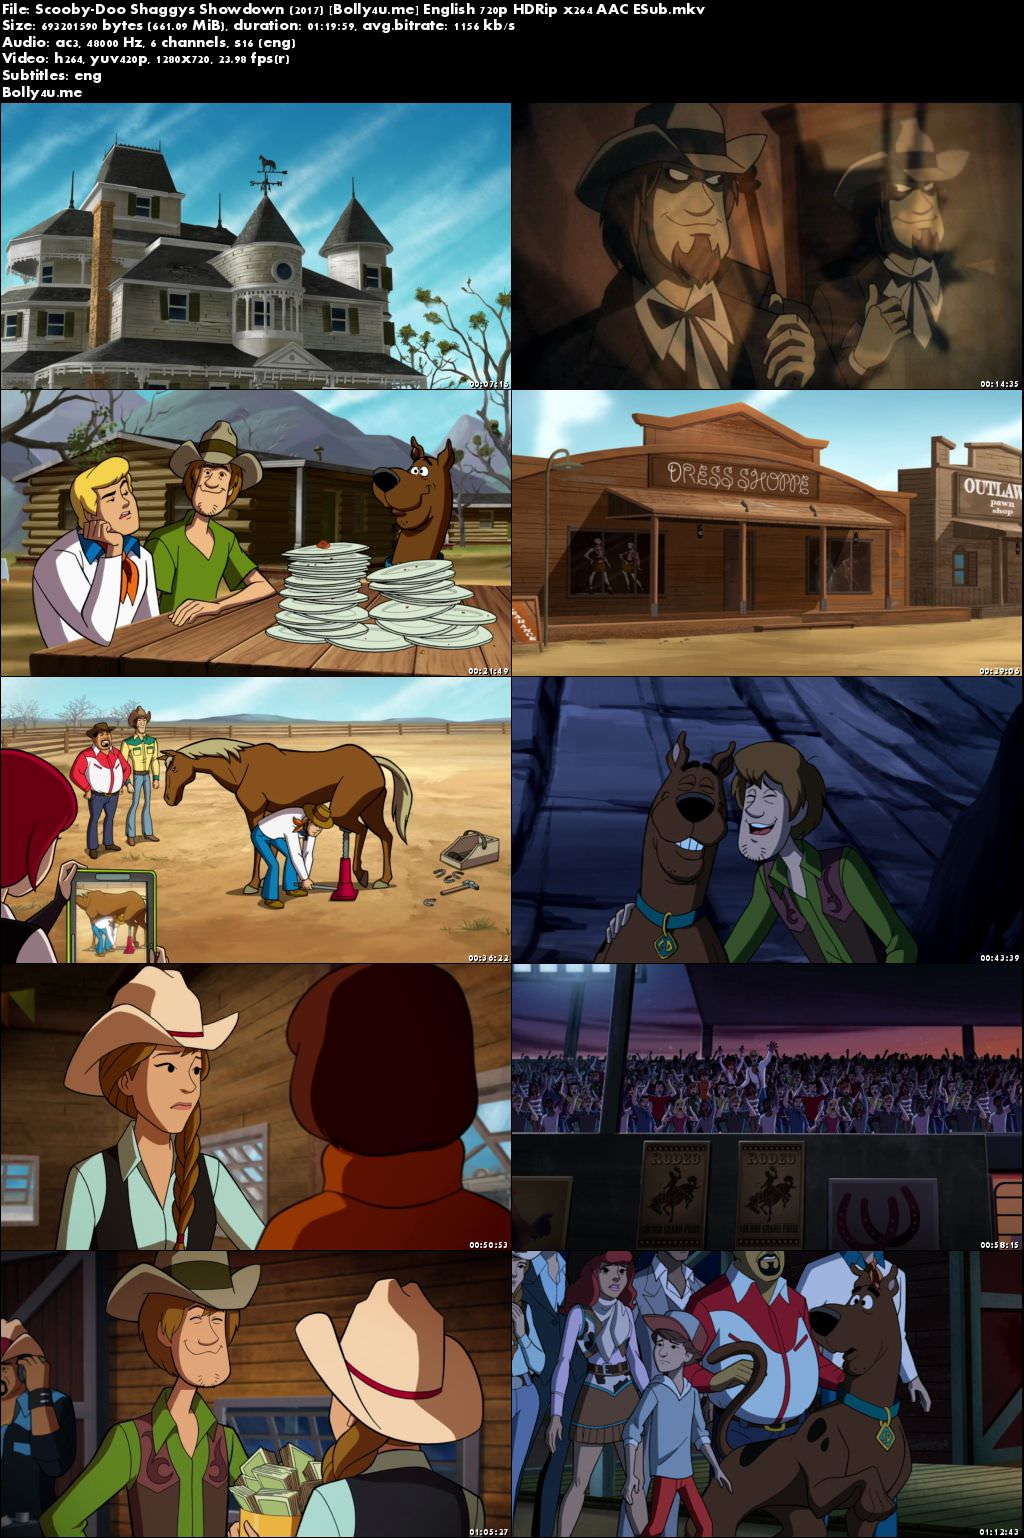 Scooby-Doo Shaggys Showdown 2017 HDRip 650MB English 720p ESub Download